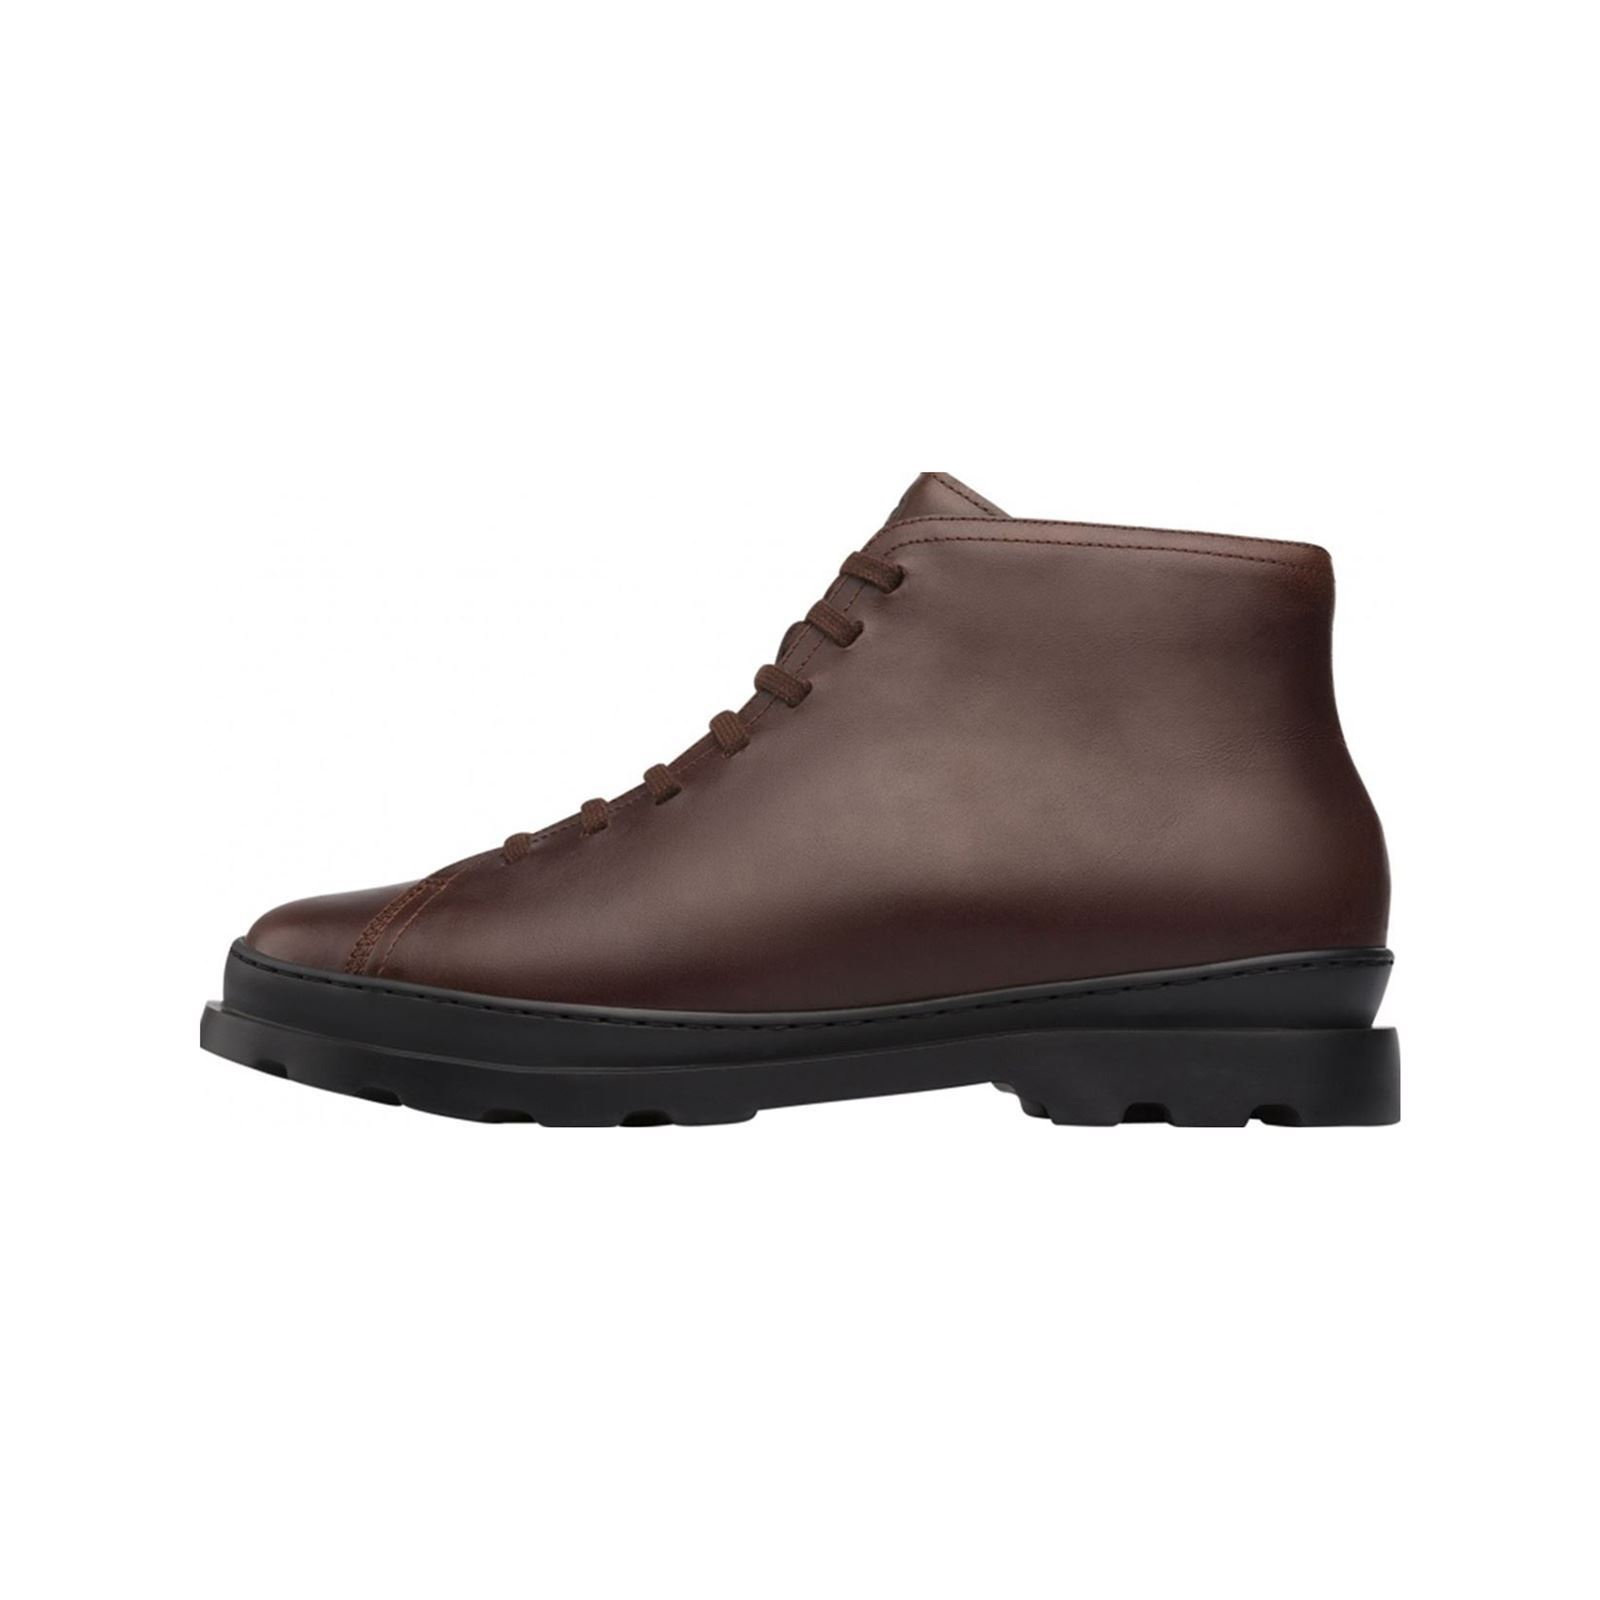 Bottines Brutus Marron Brandalley Cuir En Camper zSf0Wnxn